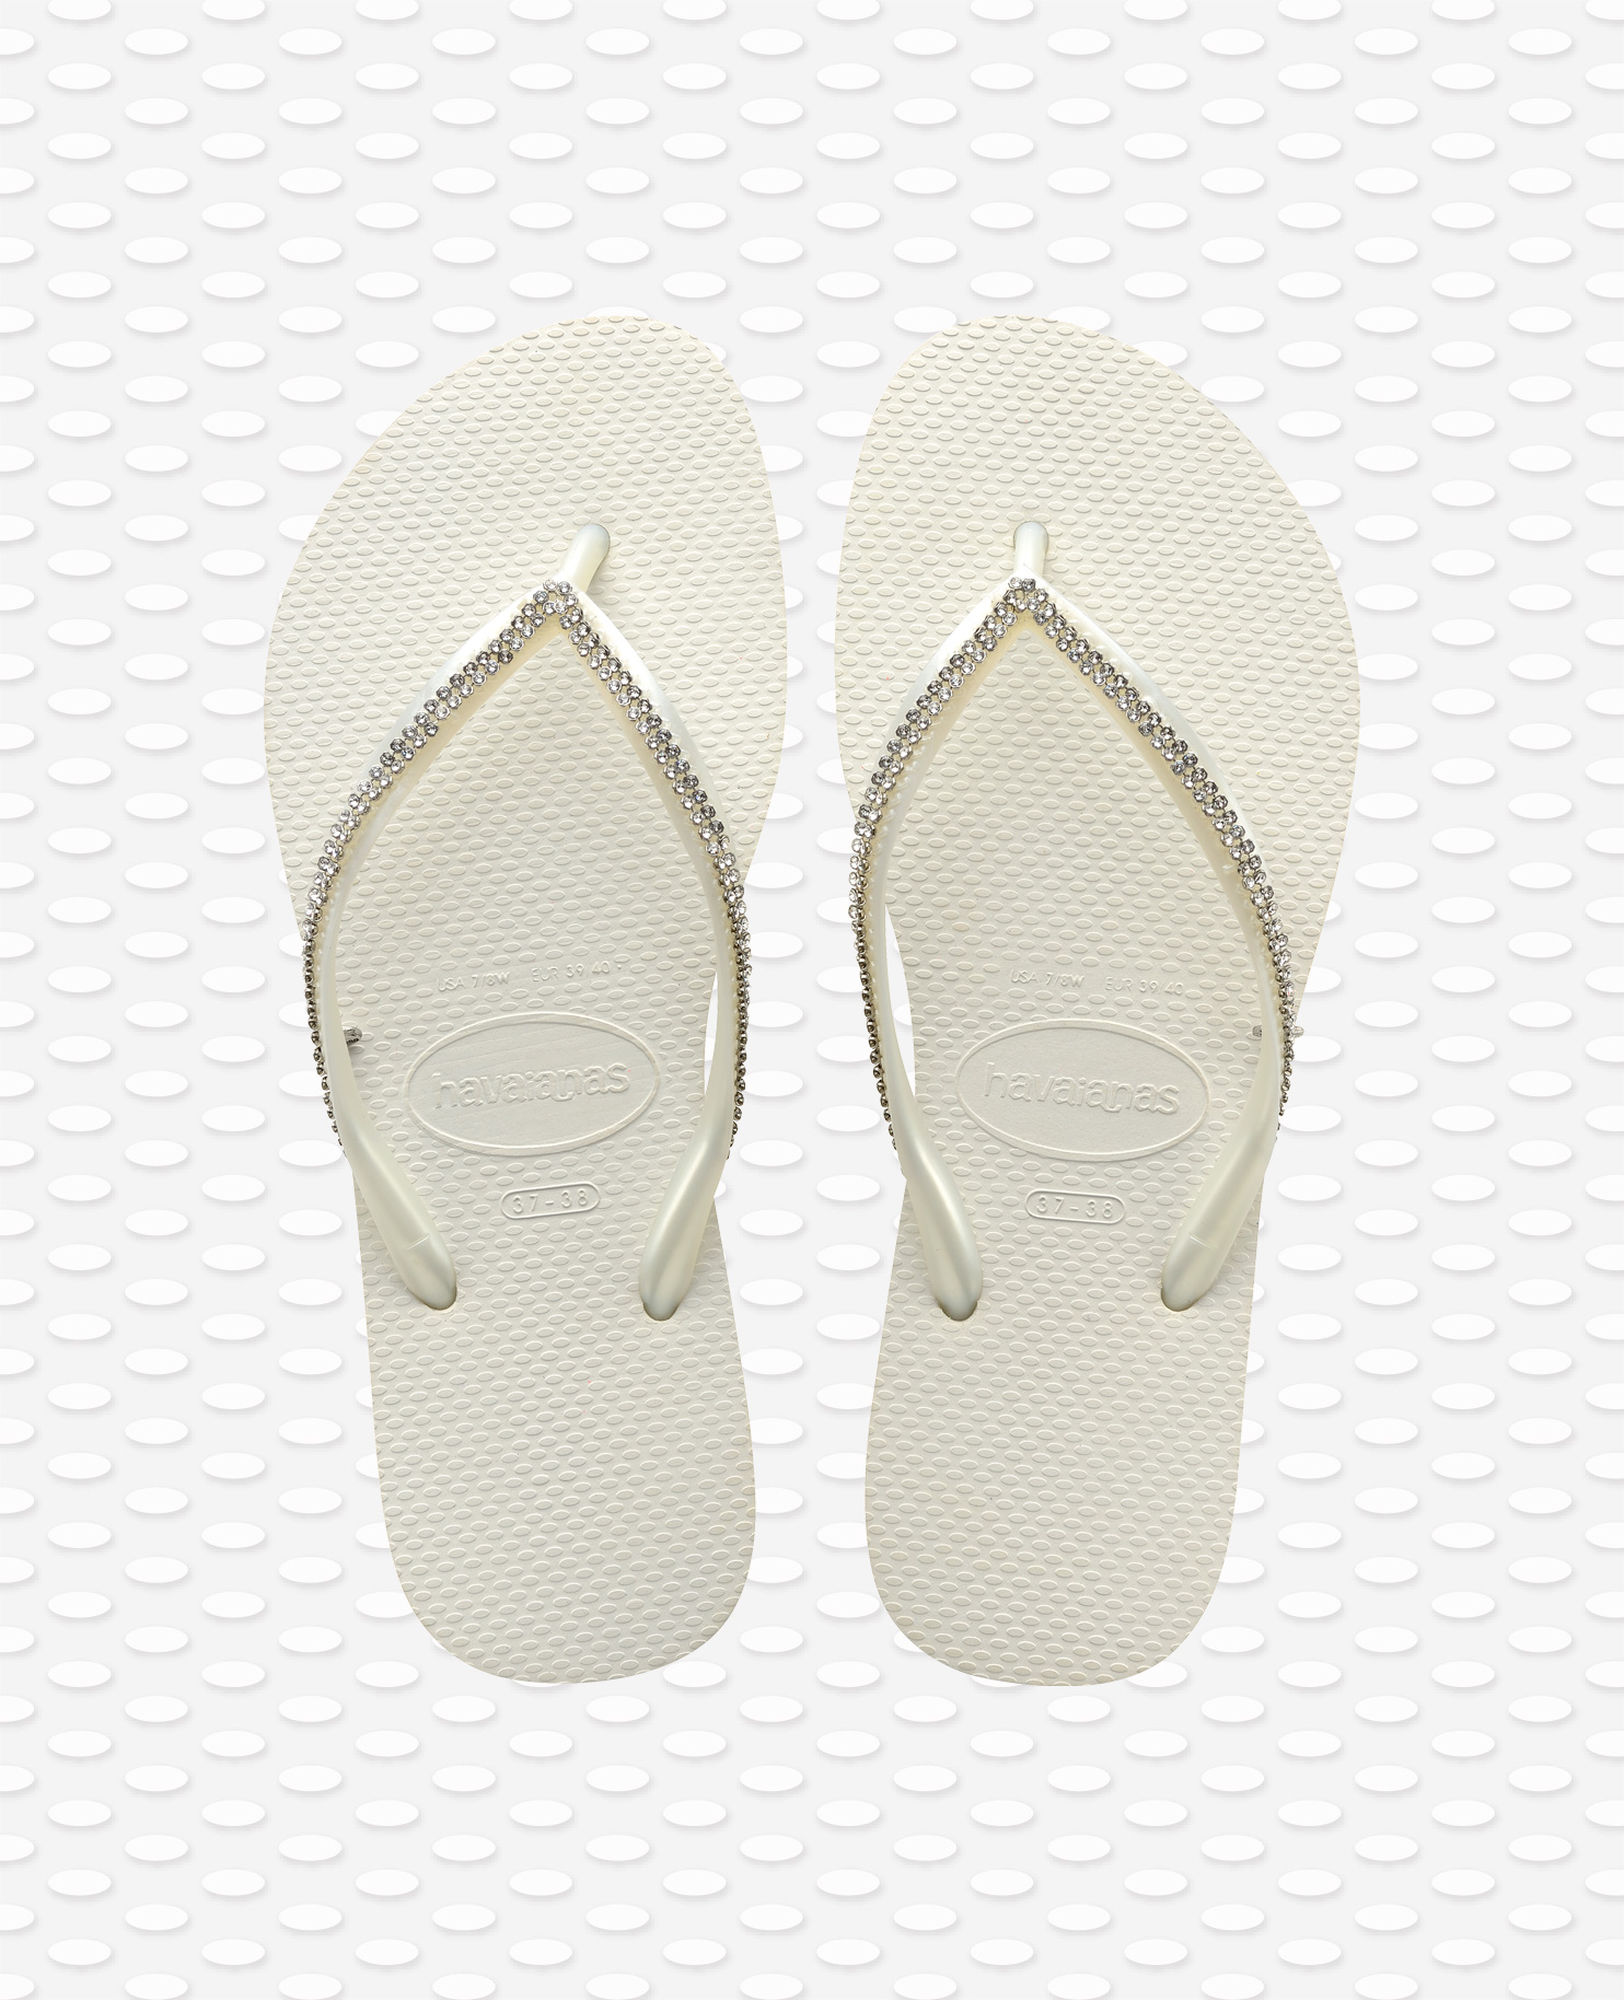 Havaianas Launch Bridal Flip Flops And They Are A Wedding